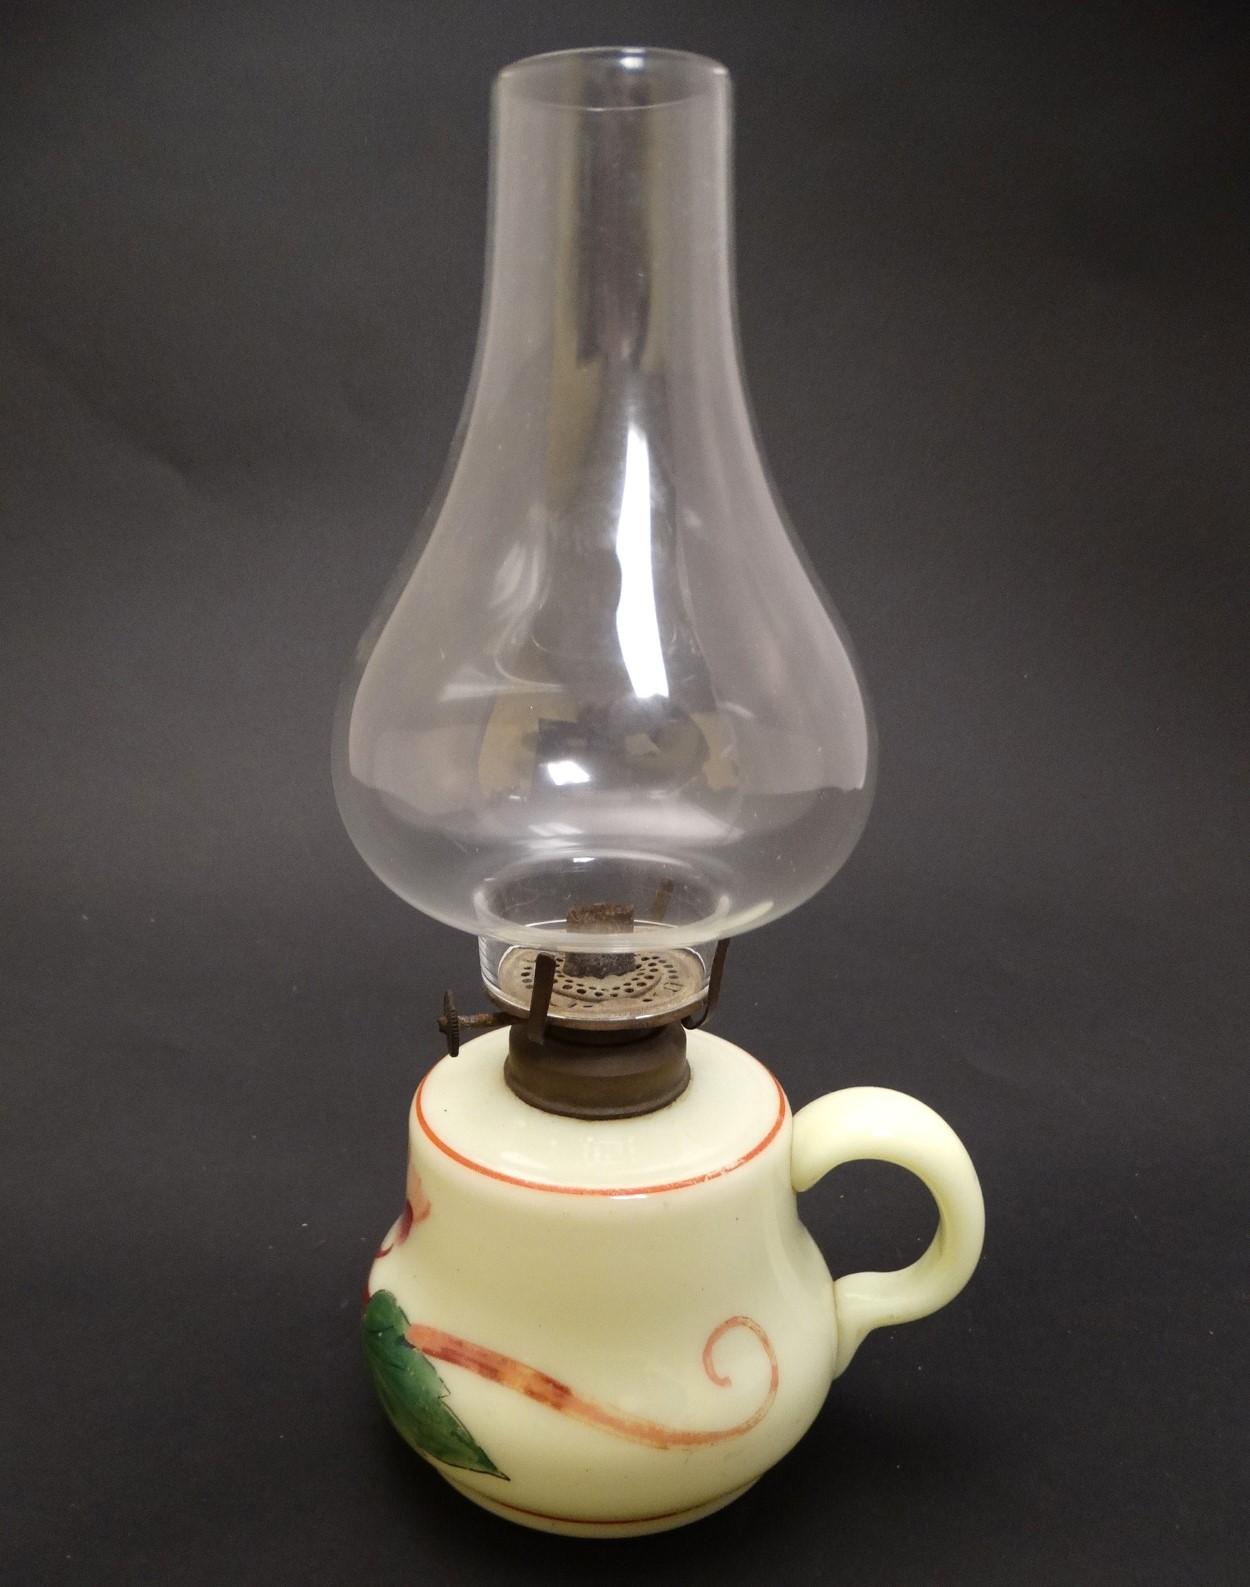 Lot 110 - A small glass oil lamp with floral decoration, loop handle and clear glass chimney.